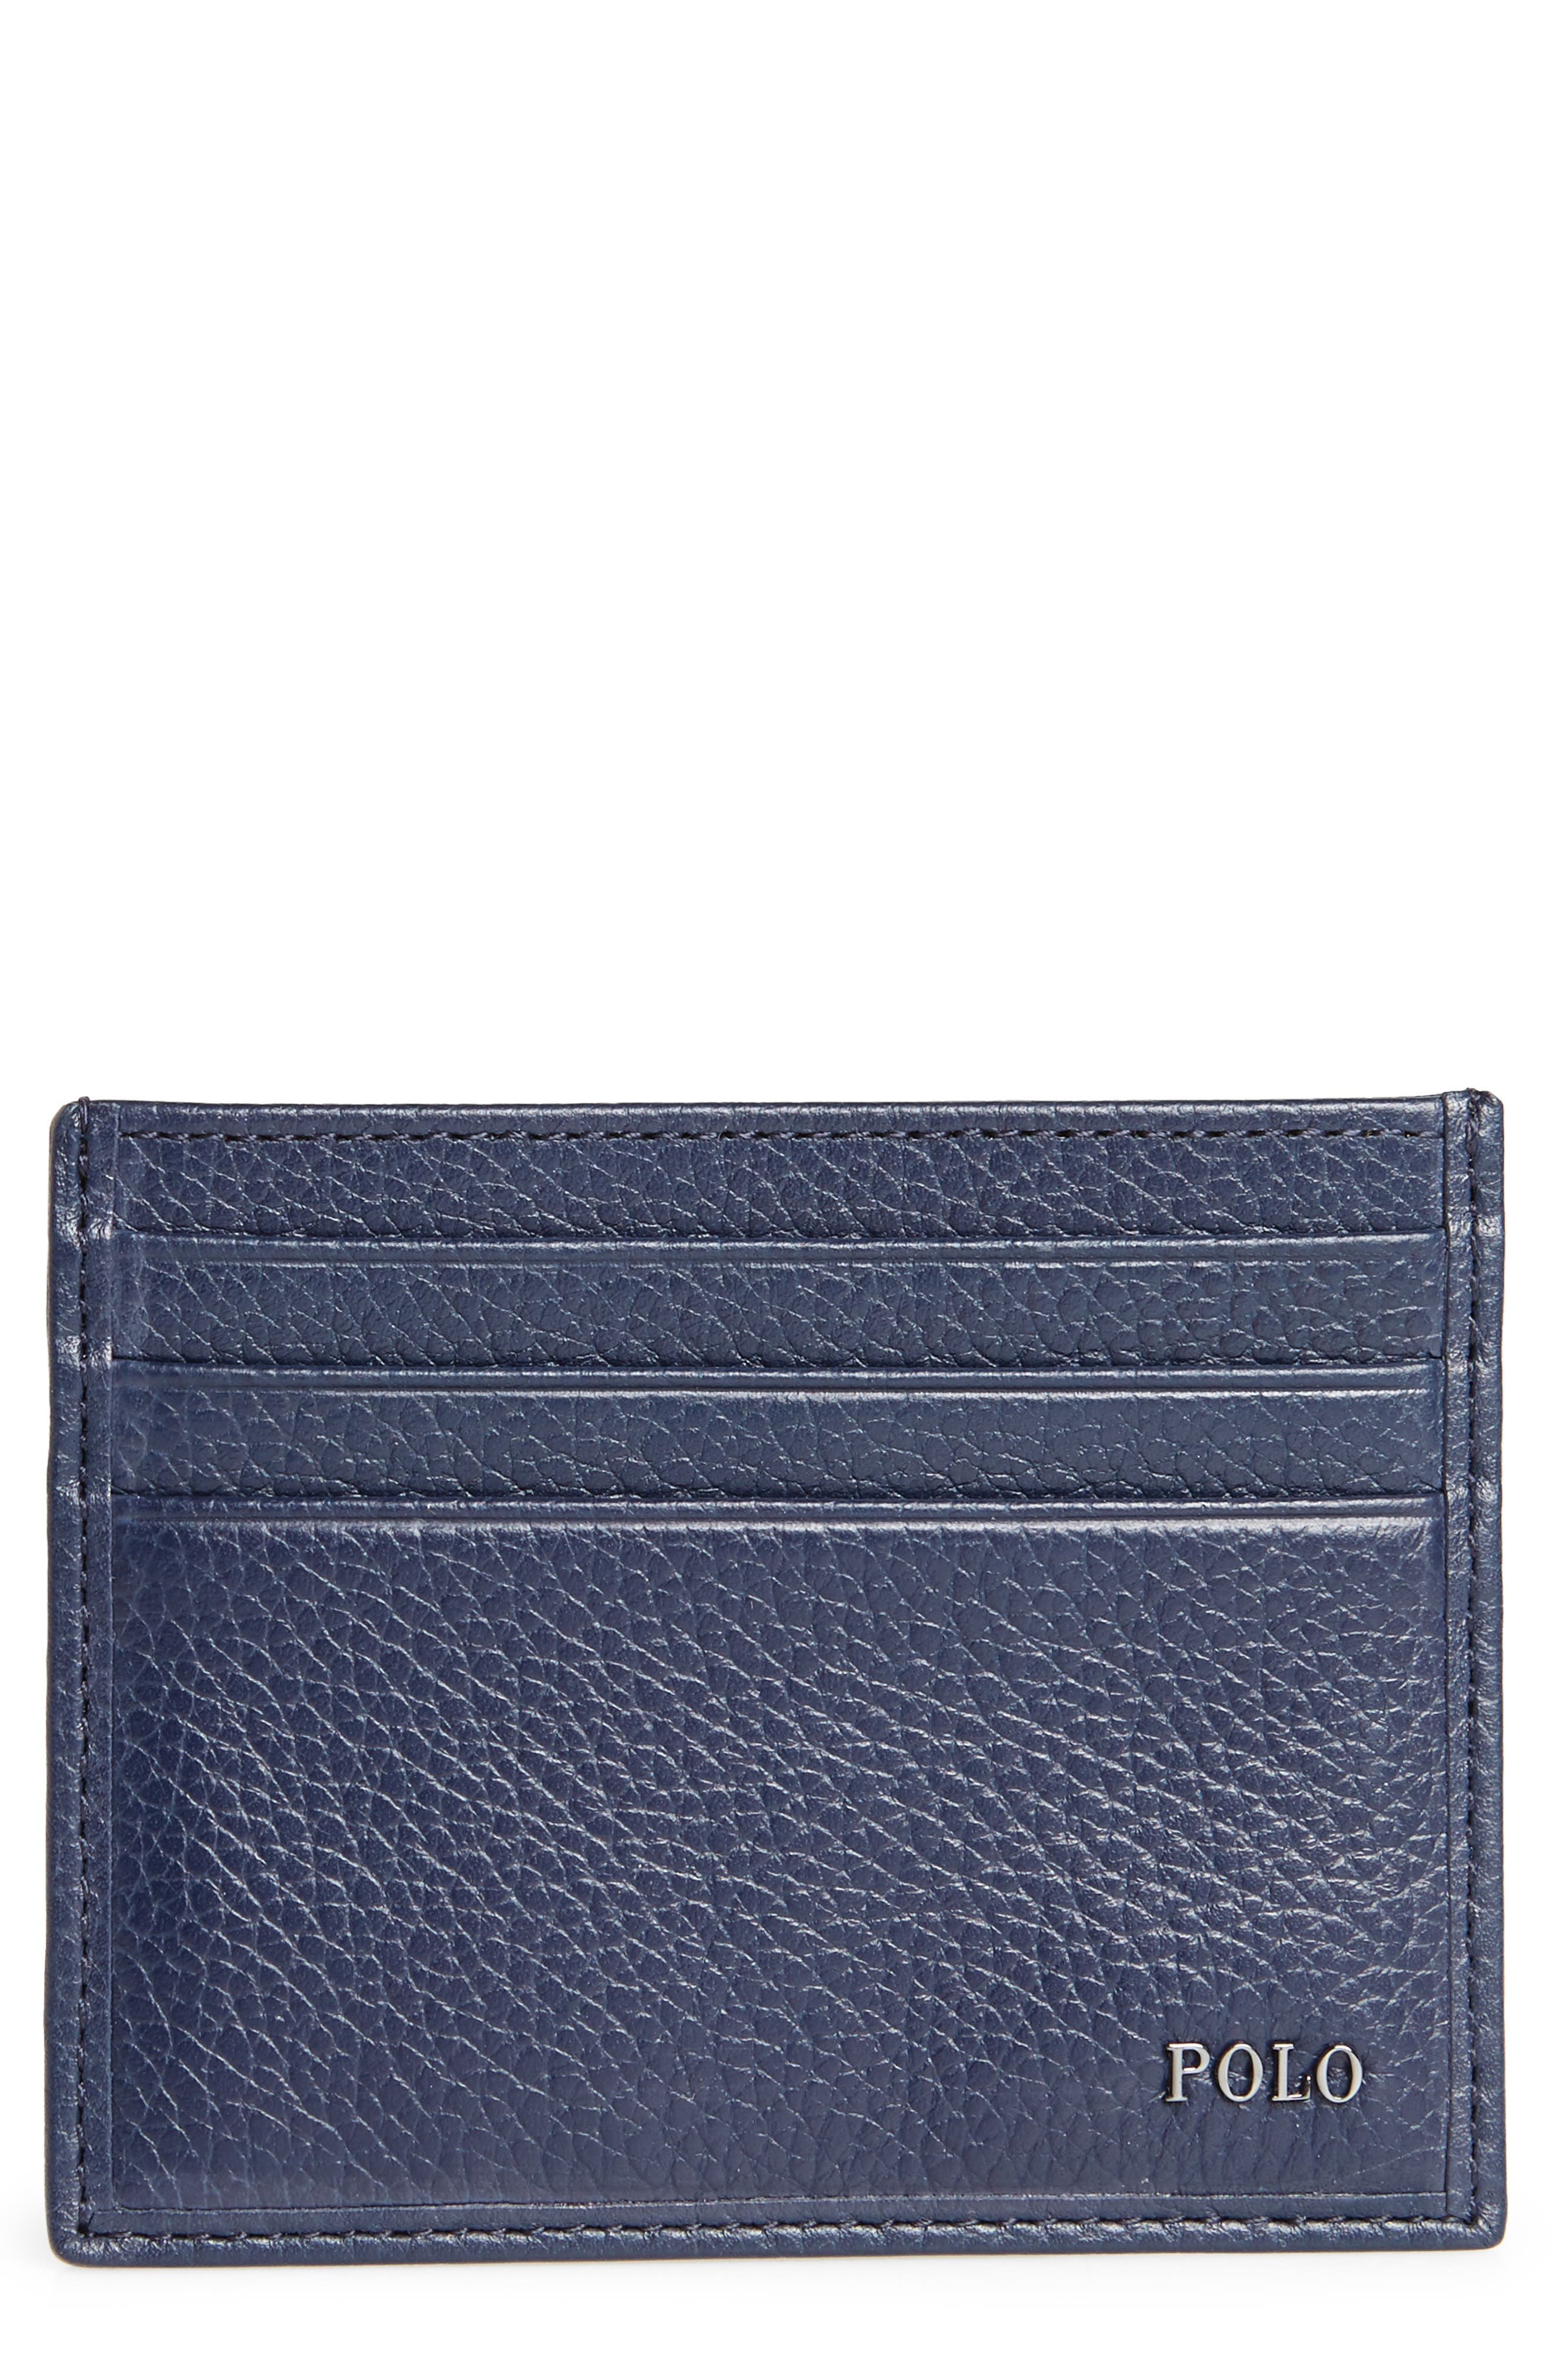 Leather Card Case,                             Main thumbnail 1, color,                             Blue